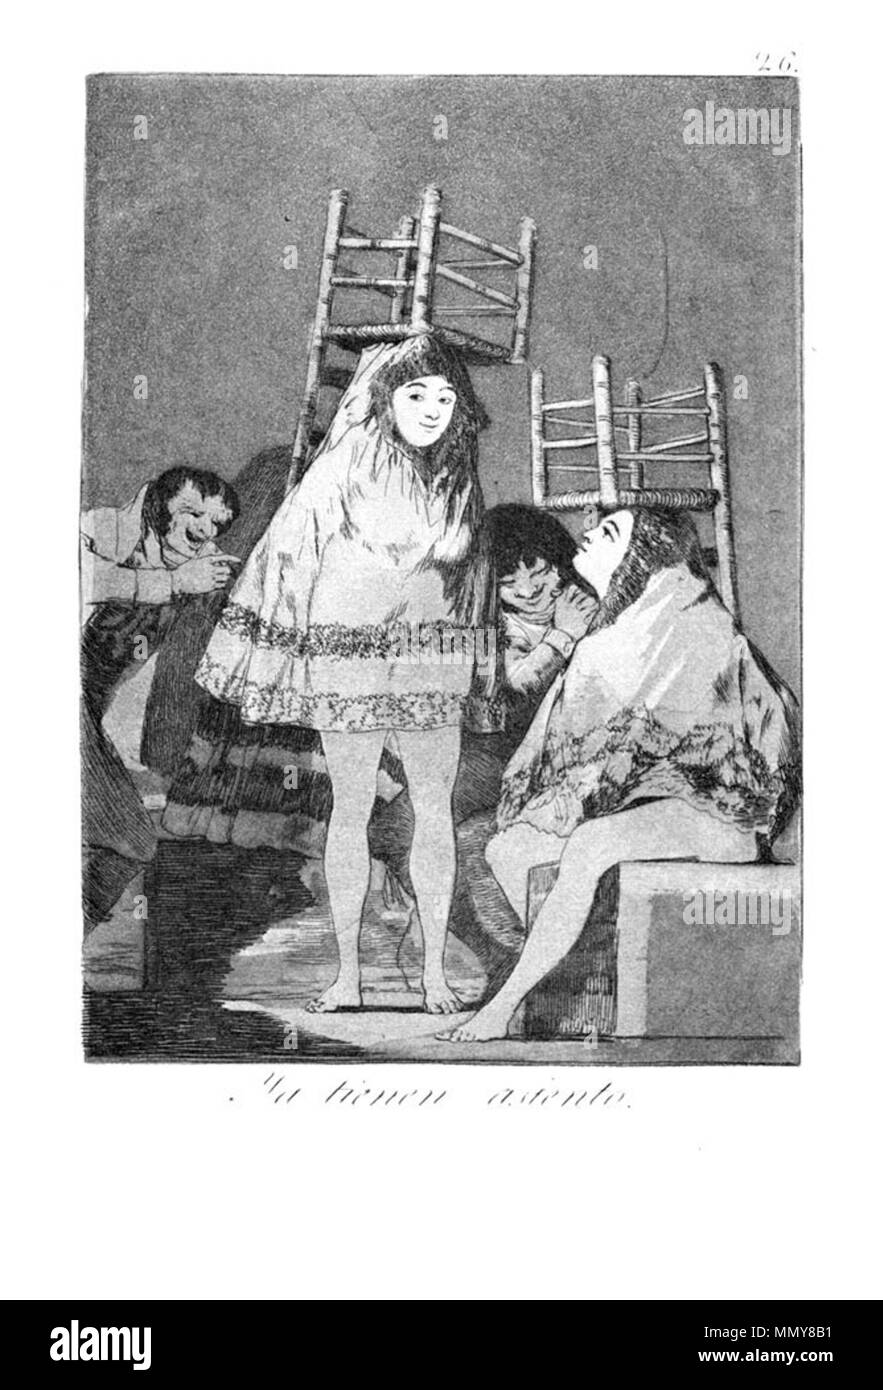 . Los Caprichos is a set of 80 aquatint prints created by Francisco Goya for release in 1799.  . 1799.   Francisco Goya (1746–1828)   Alternative names Francisco Goya Lucientes, Francisco de Goya y Lucientes, Francisco José Goya Lucientes  Description Spanish painter, printmaker, lithographer, engraver and etcher  Date of birth/death 30 March 1746 16 April 1828  Location of birth/death Fuendetodos Bordeaux  Work location Madrid, Zaragoza, Bordeaux  Authority control  : Q5432 VIAF:?54343141 ISNI:?0000 0001 2280 1608 ULAN:?500118936 LCCN:?n79003363 NLA:?36545788 WorldCat Goya - Caprichos (26 - Stock Image